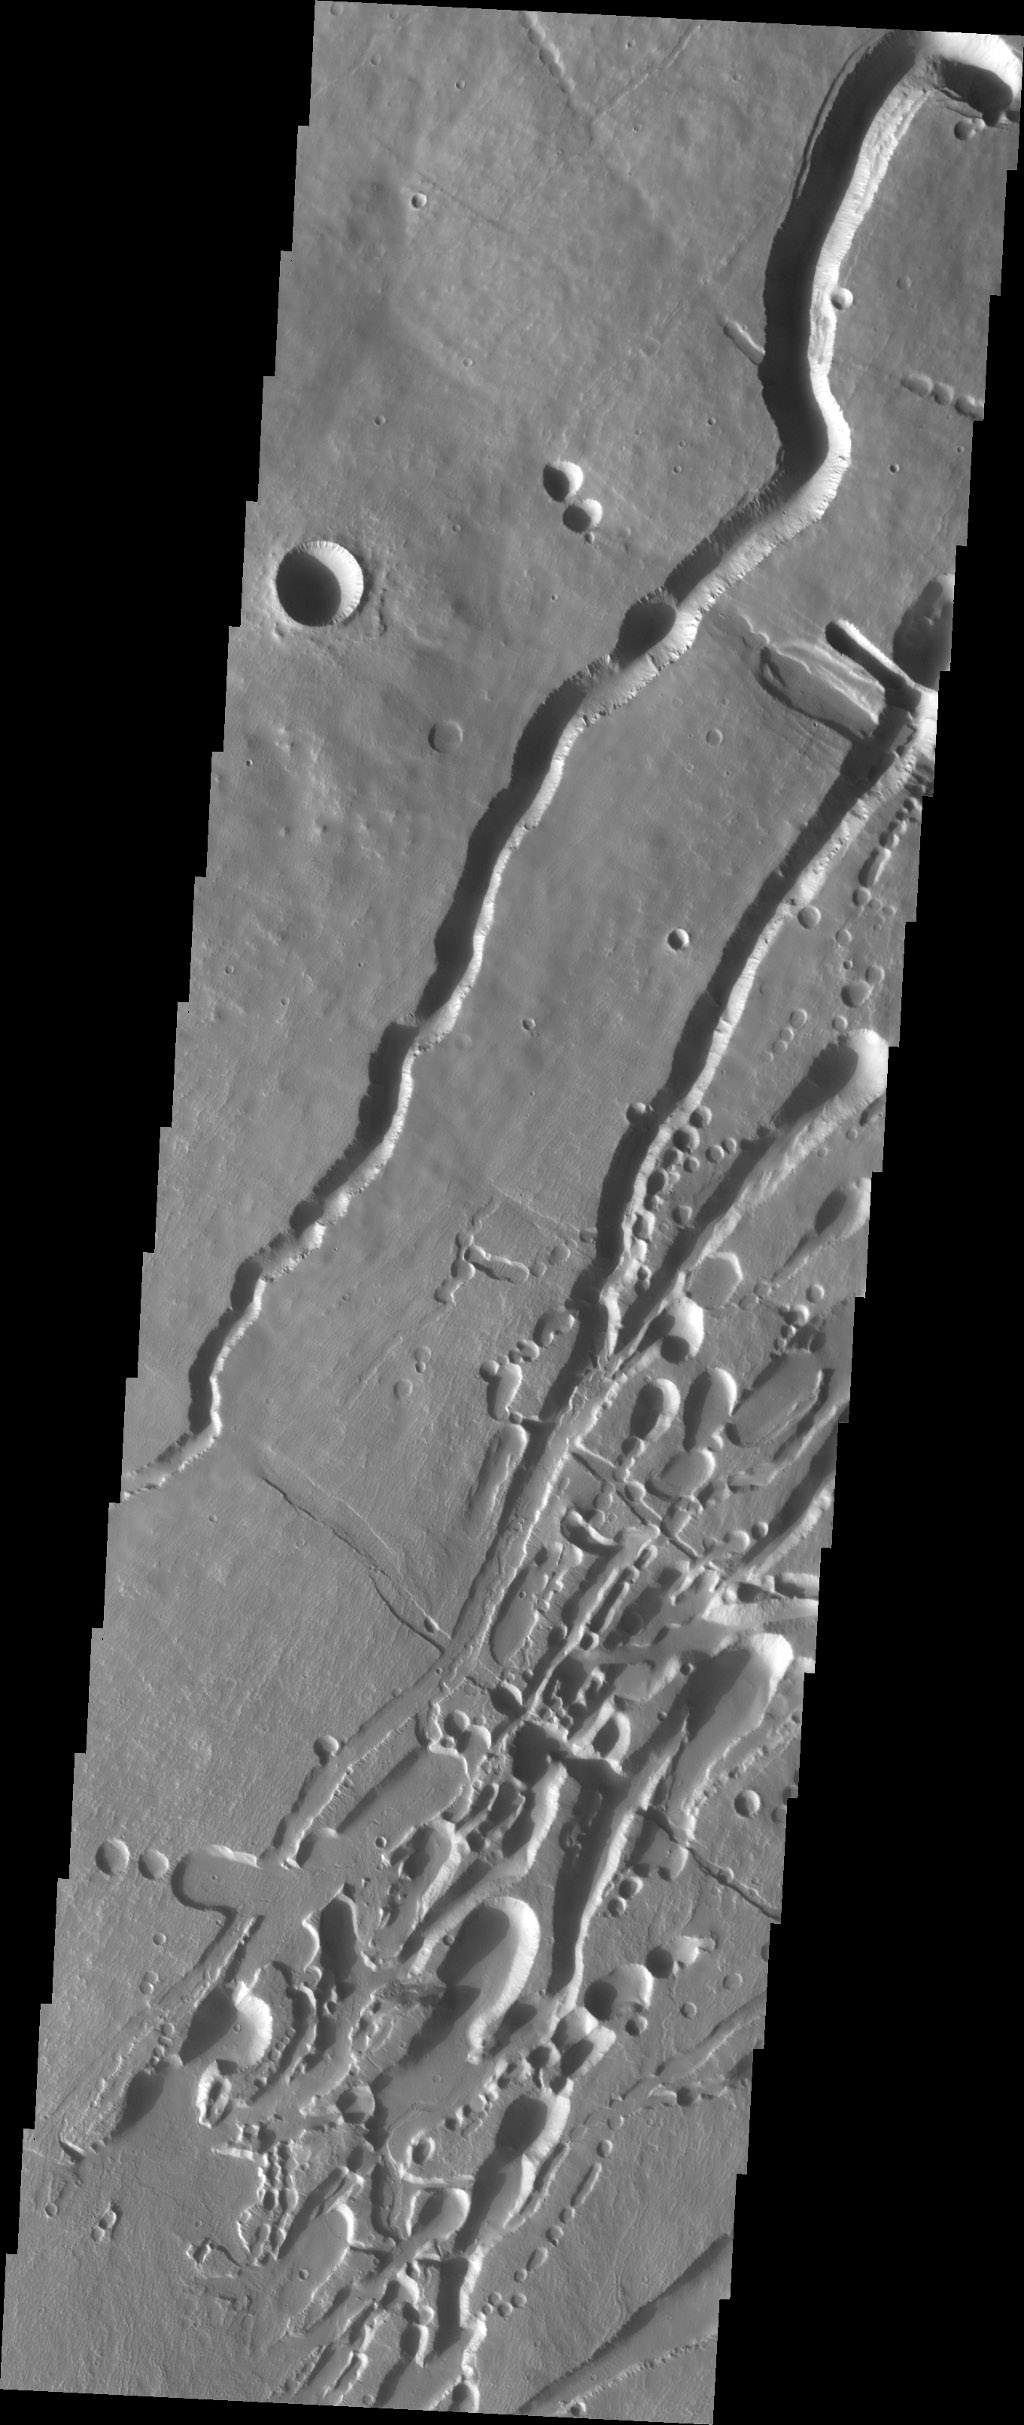 This image from NASA's 2001 Mars Odyssey spacecraft shows part of the southern flank of Pavonis Mons. Pavonis Mons is one of the three aligned Tharsis Volcanoes.